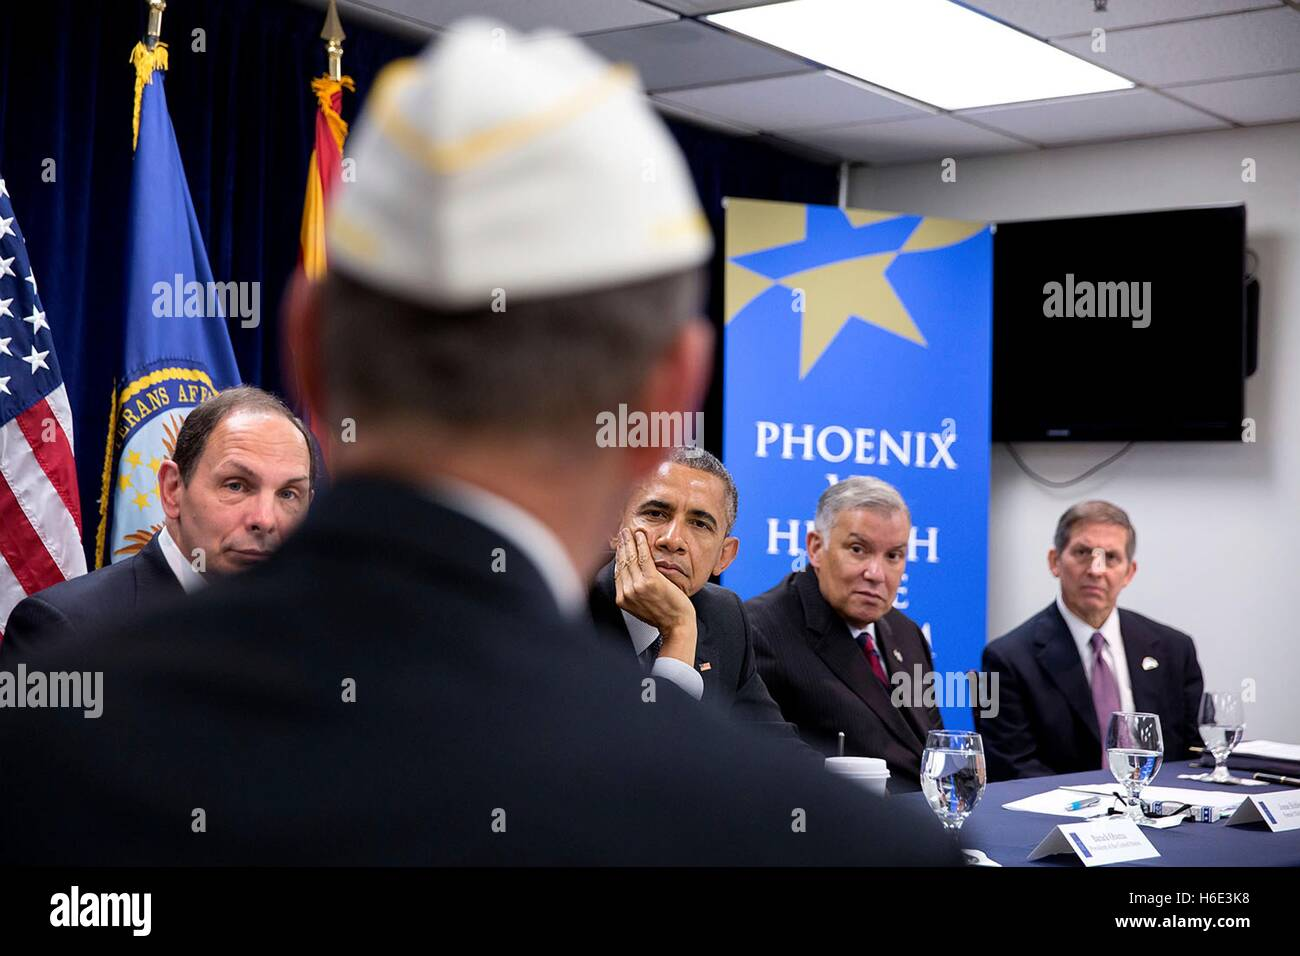 U.S. President Barack Obama and Veterans Affairs Secretary Robert McDonald meet with veterans and VA employees during Stock Photo